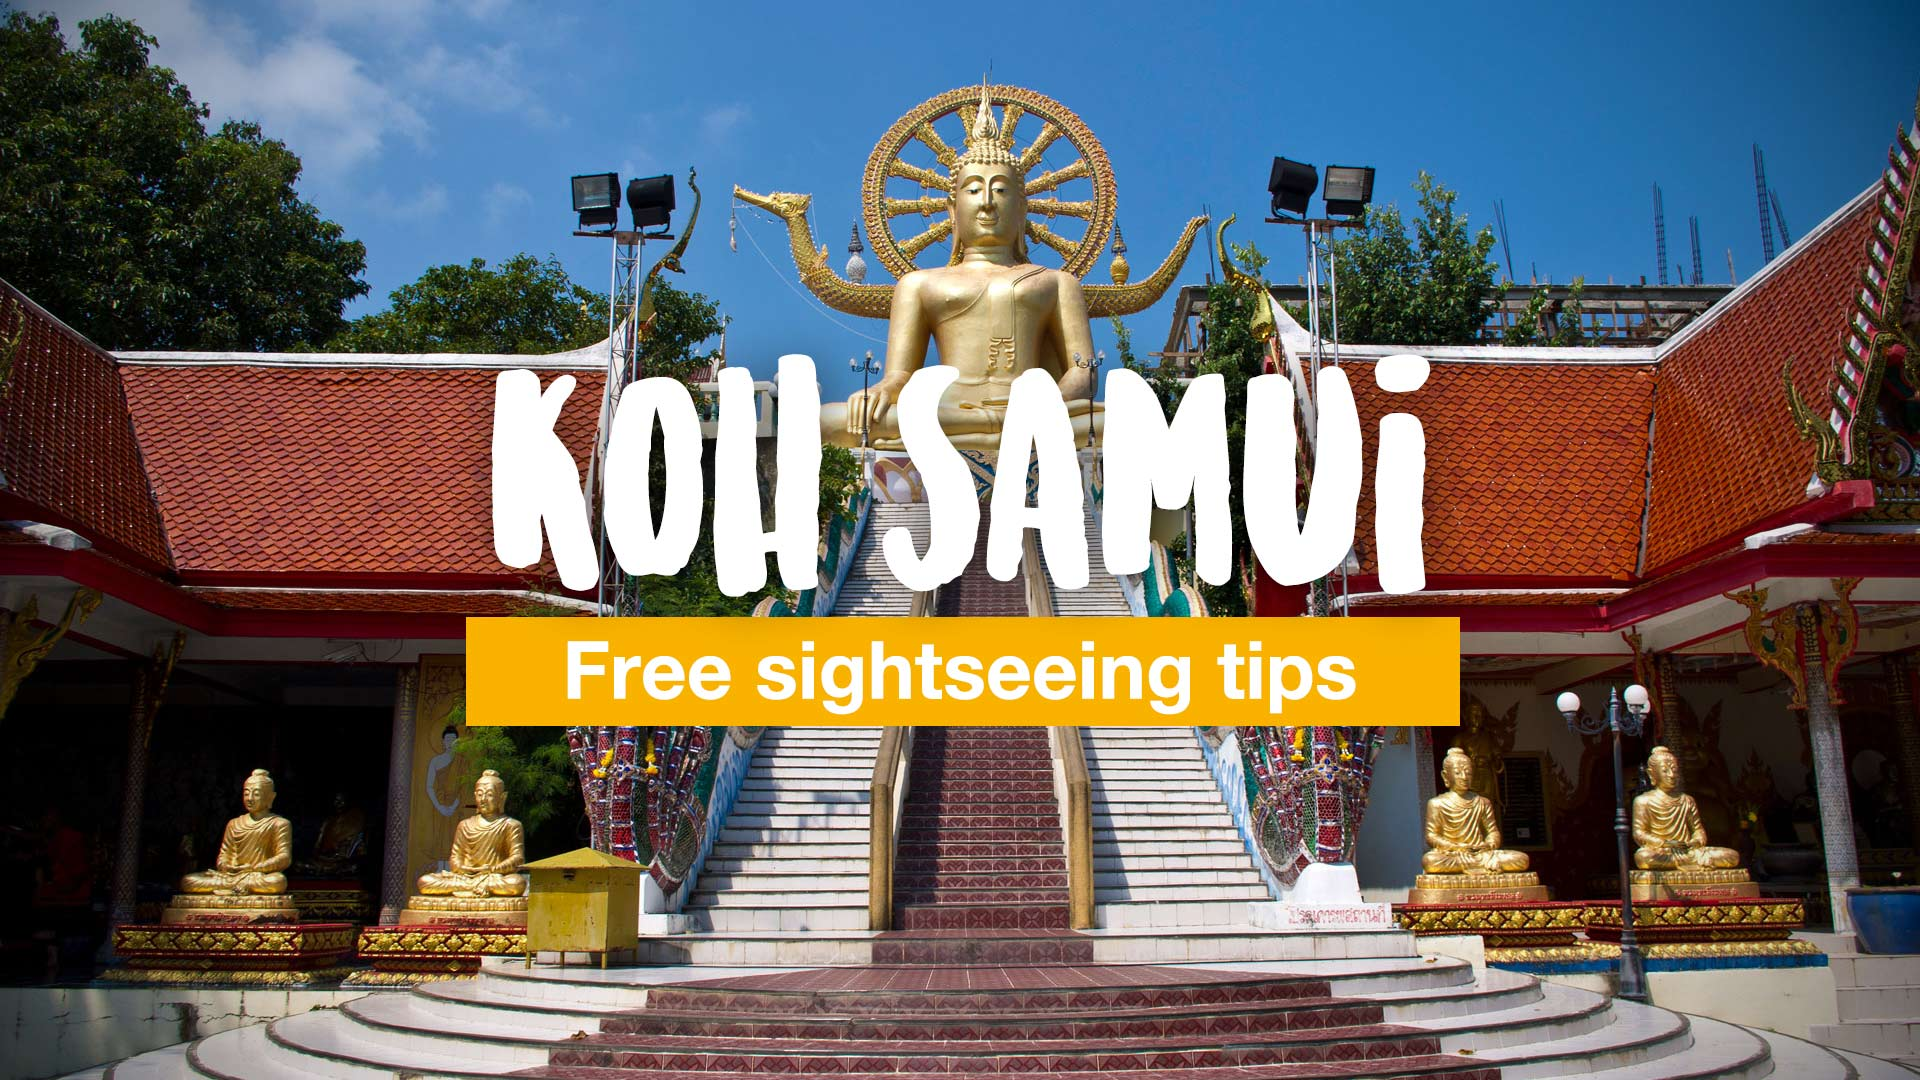 7 free sightseeing tips for Koh Samui | Travel blog about